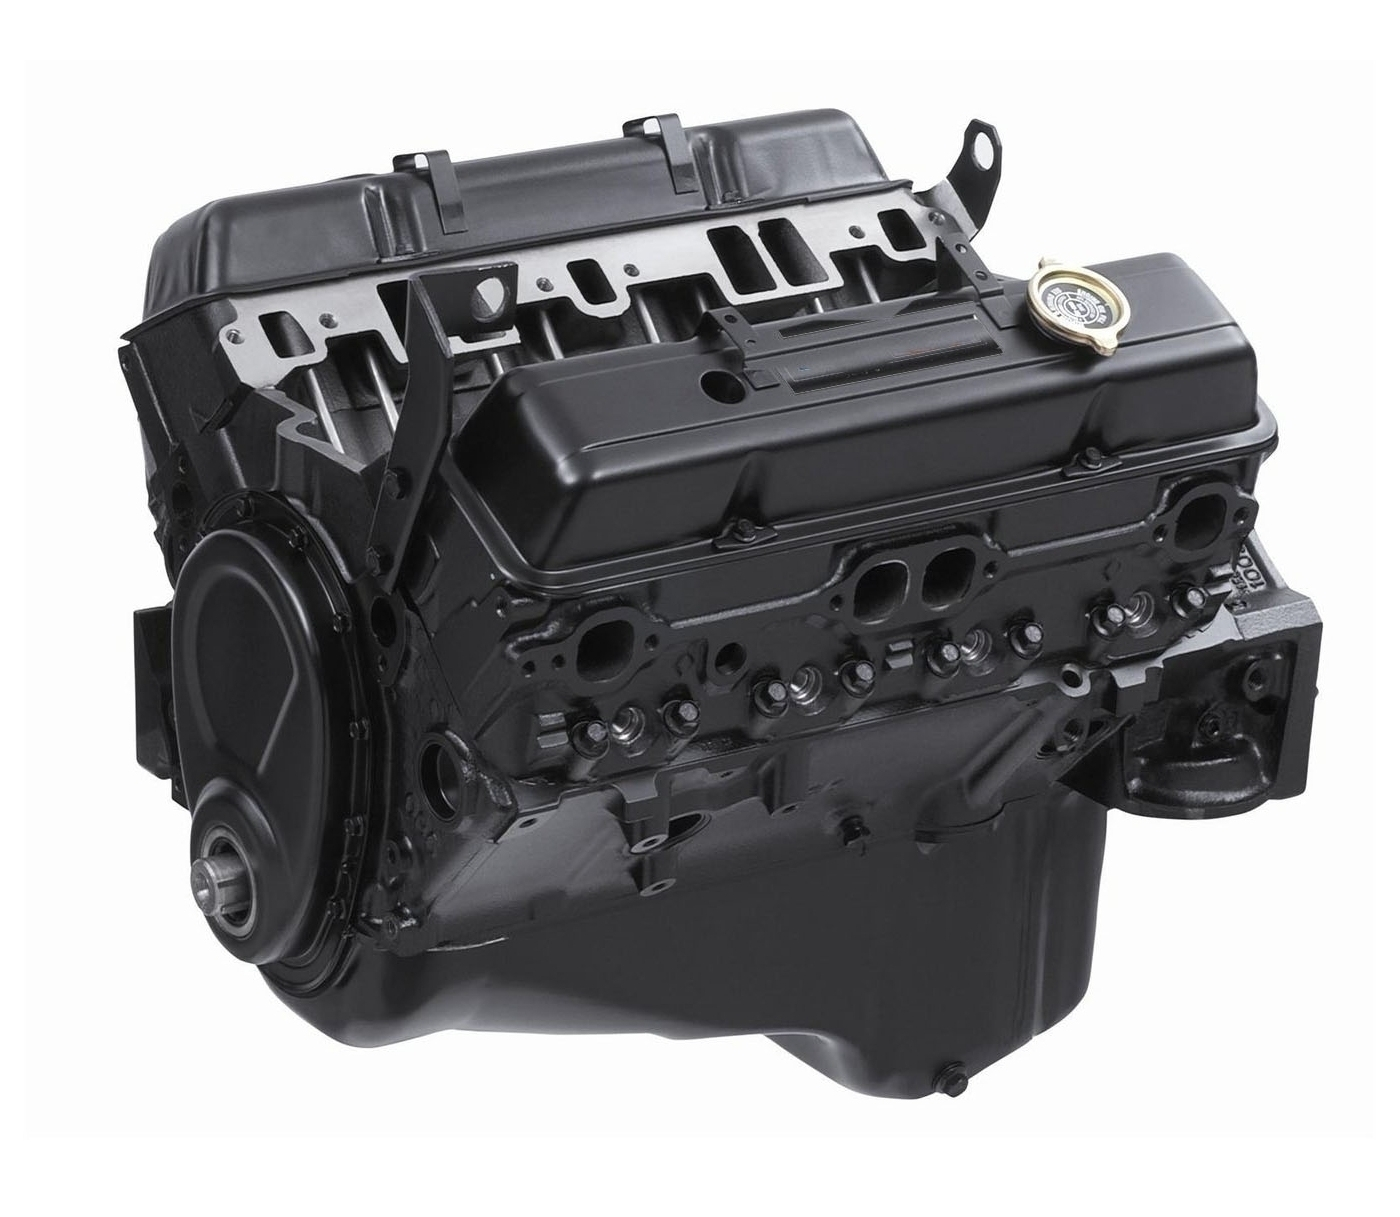 5.7L Reman Long Block Engine For Chevrolet Silverado